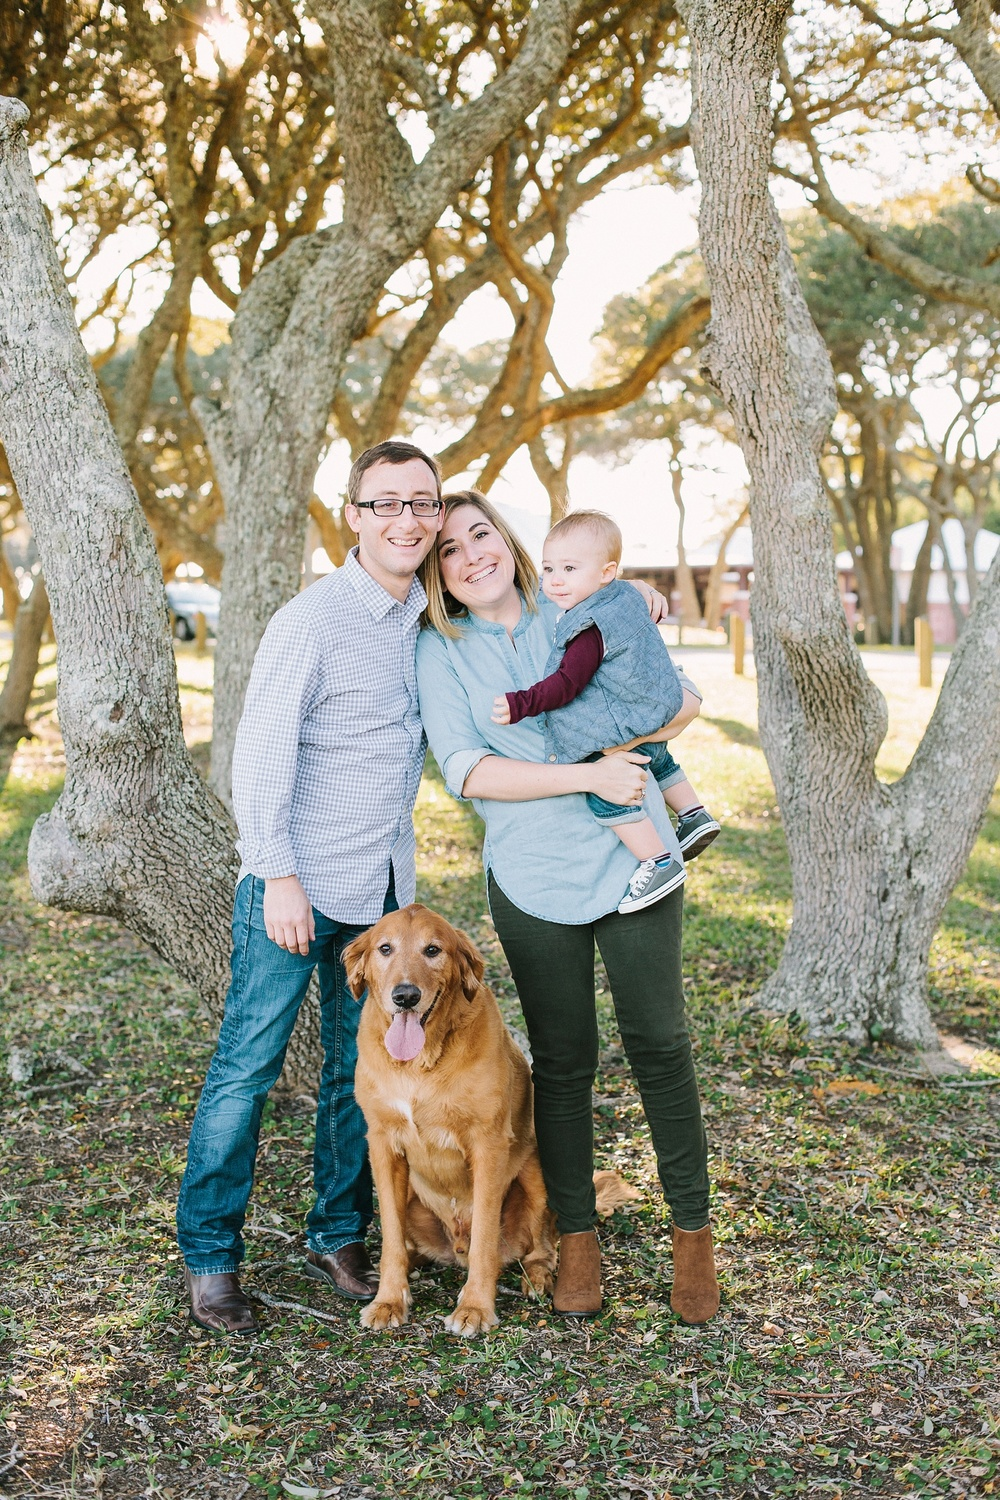 Lindsey_A_Miller_photography_family_portrait_carolina_beach_kure_fort_fisher_oak_trees_dog_baby_north_carolina_005.jpg